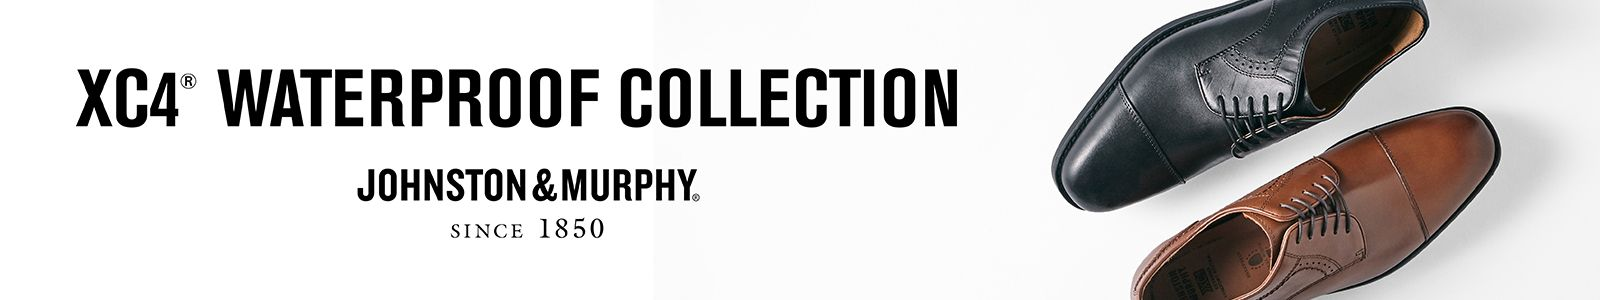 XC4, Waterproof Collection, Johnston and Murphy, Since 1850